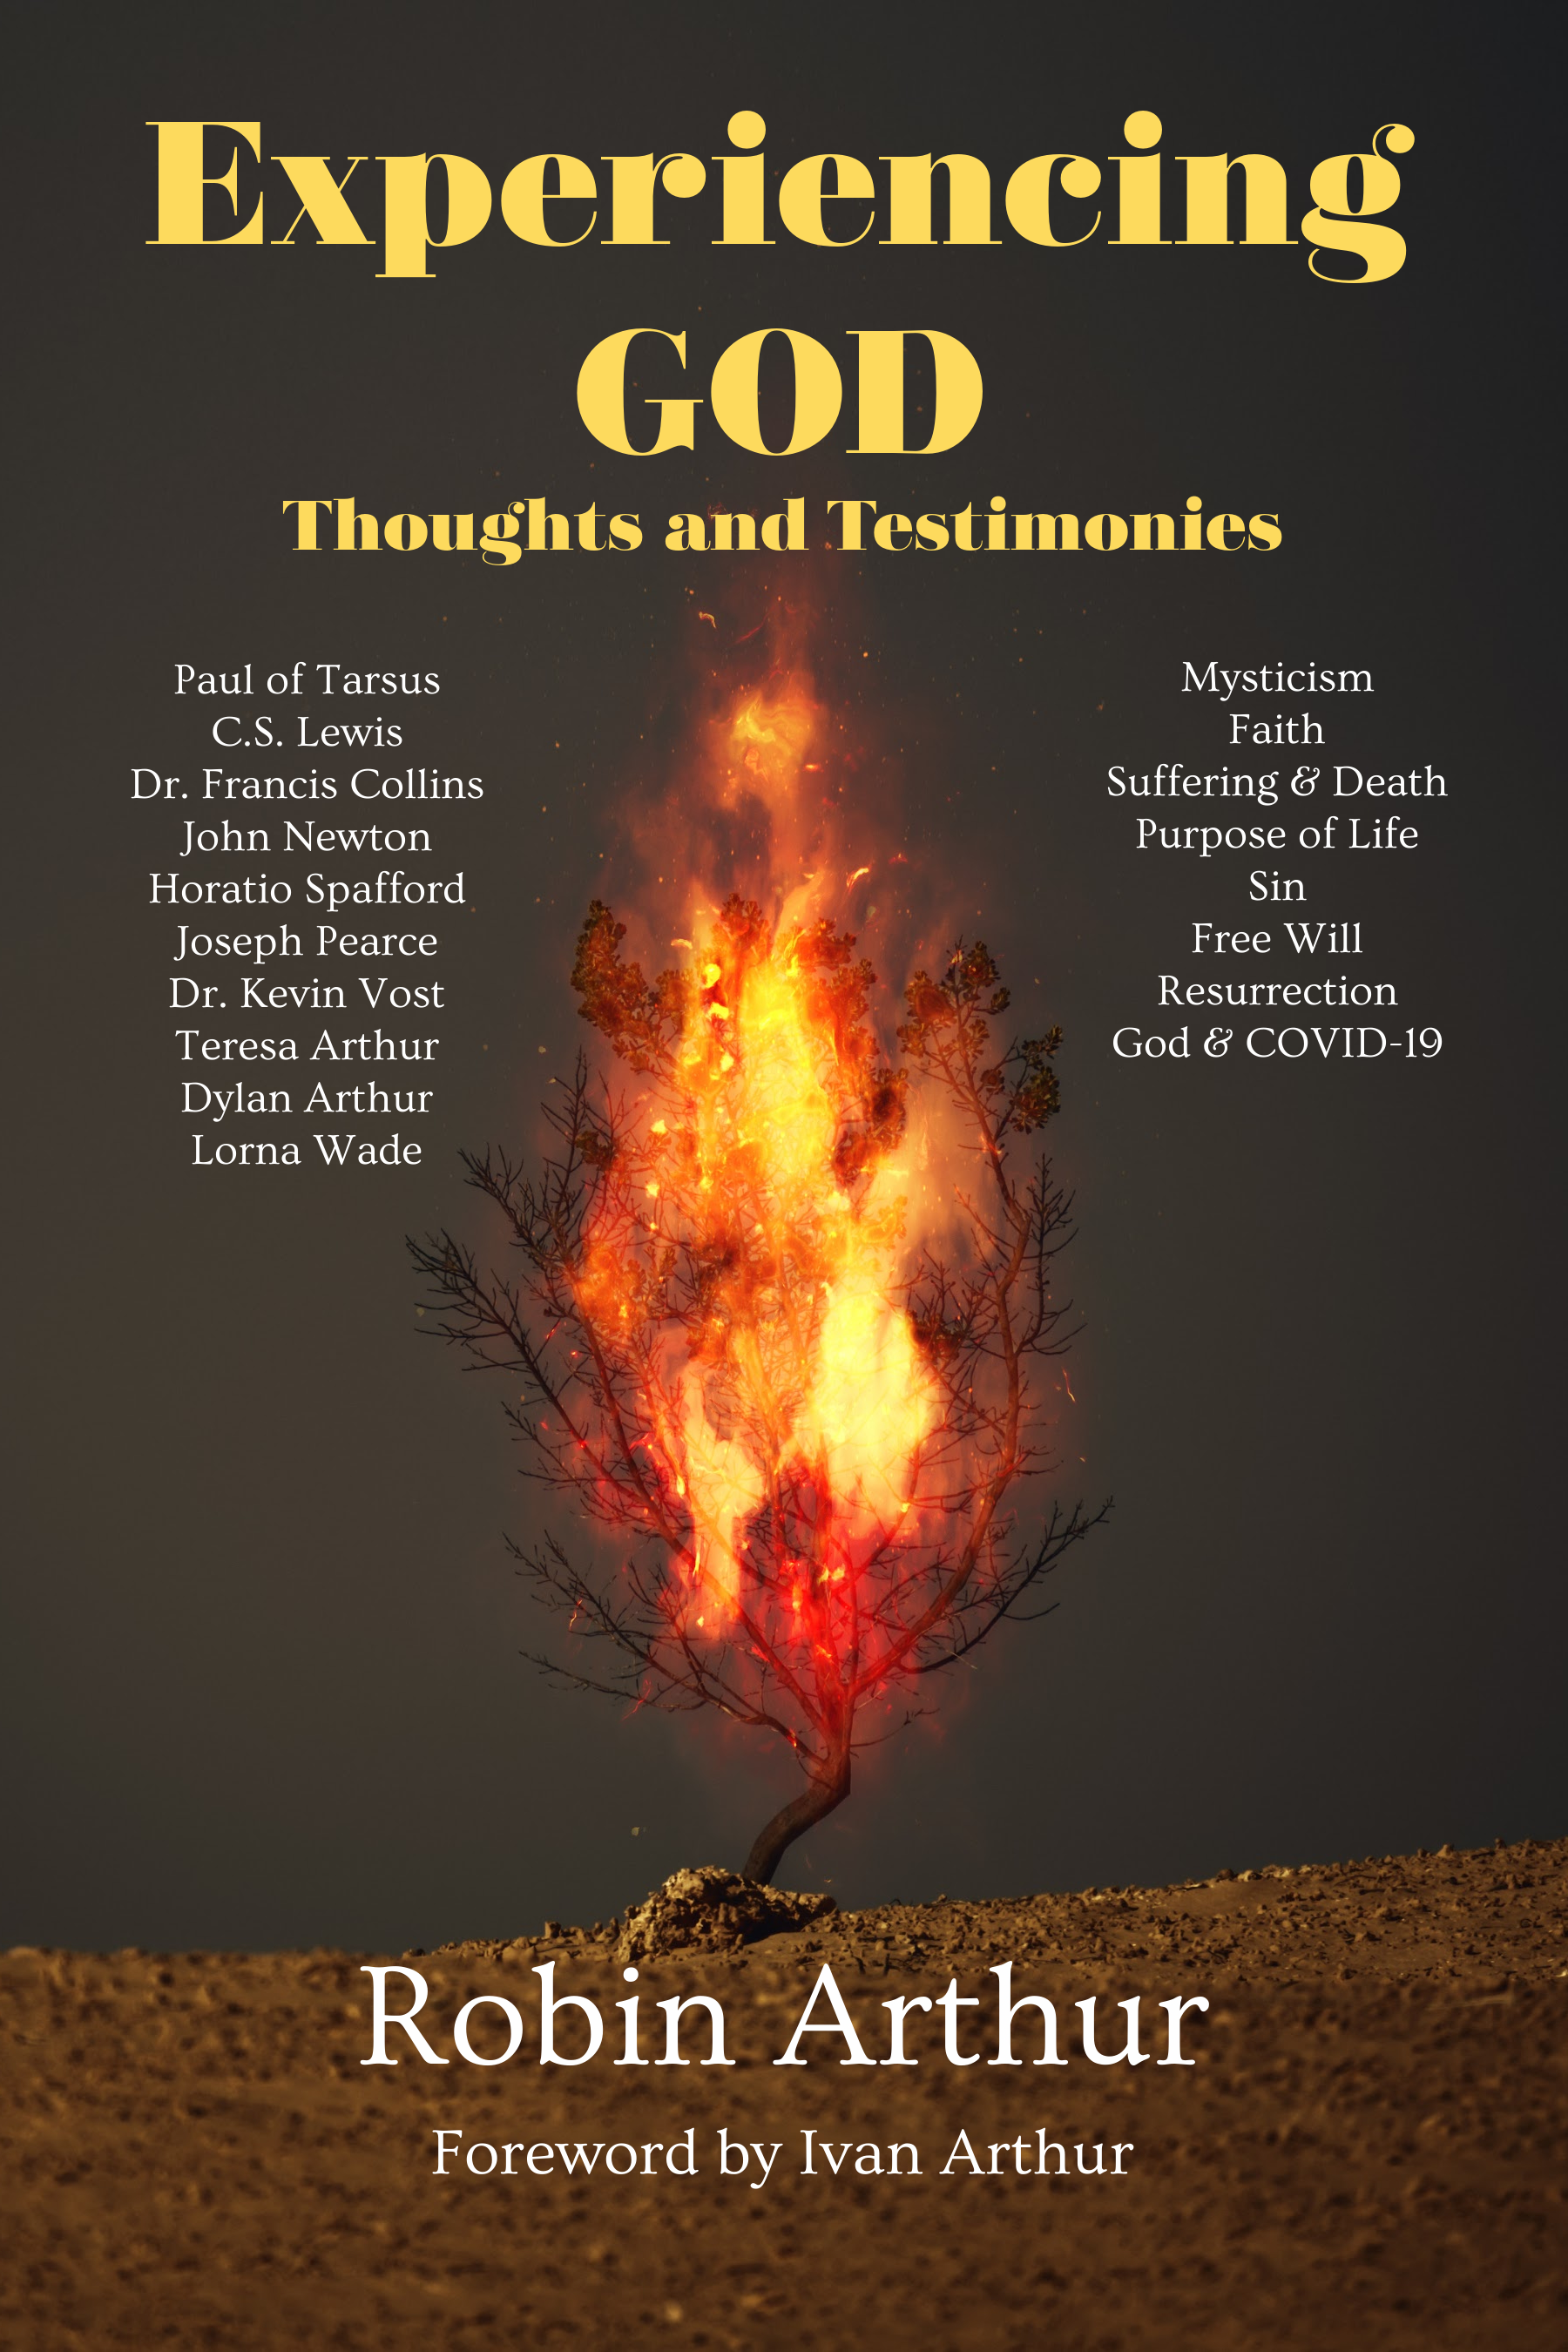 Experiencing God: Thoughts and Testimonies